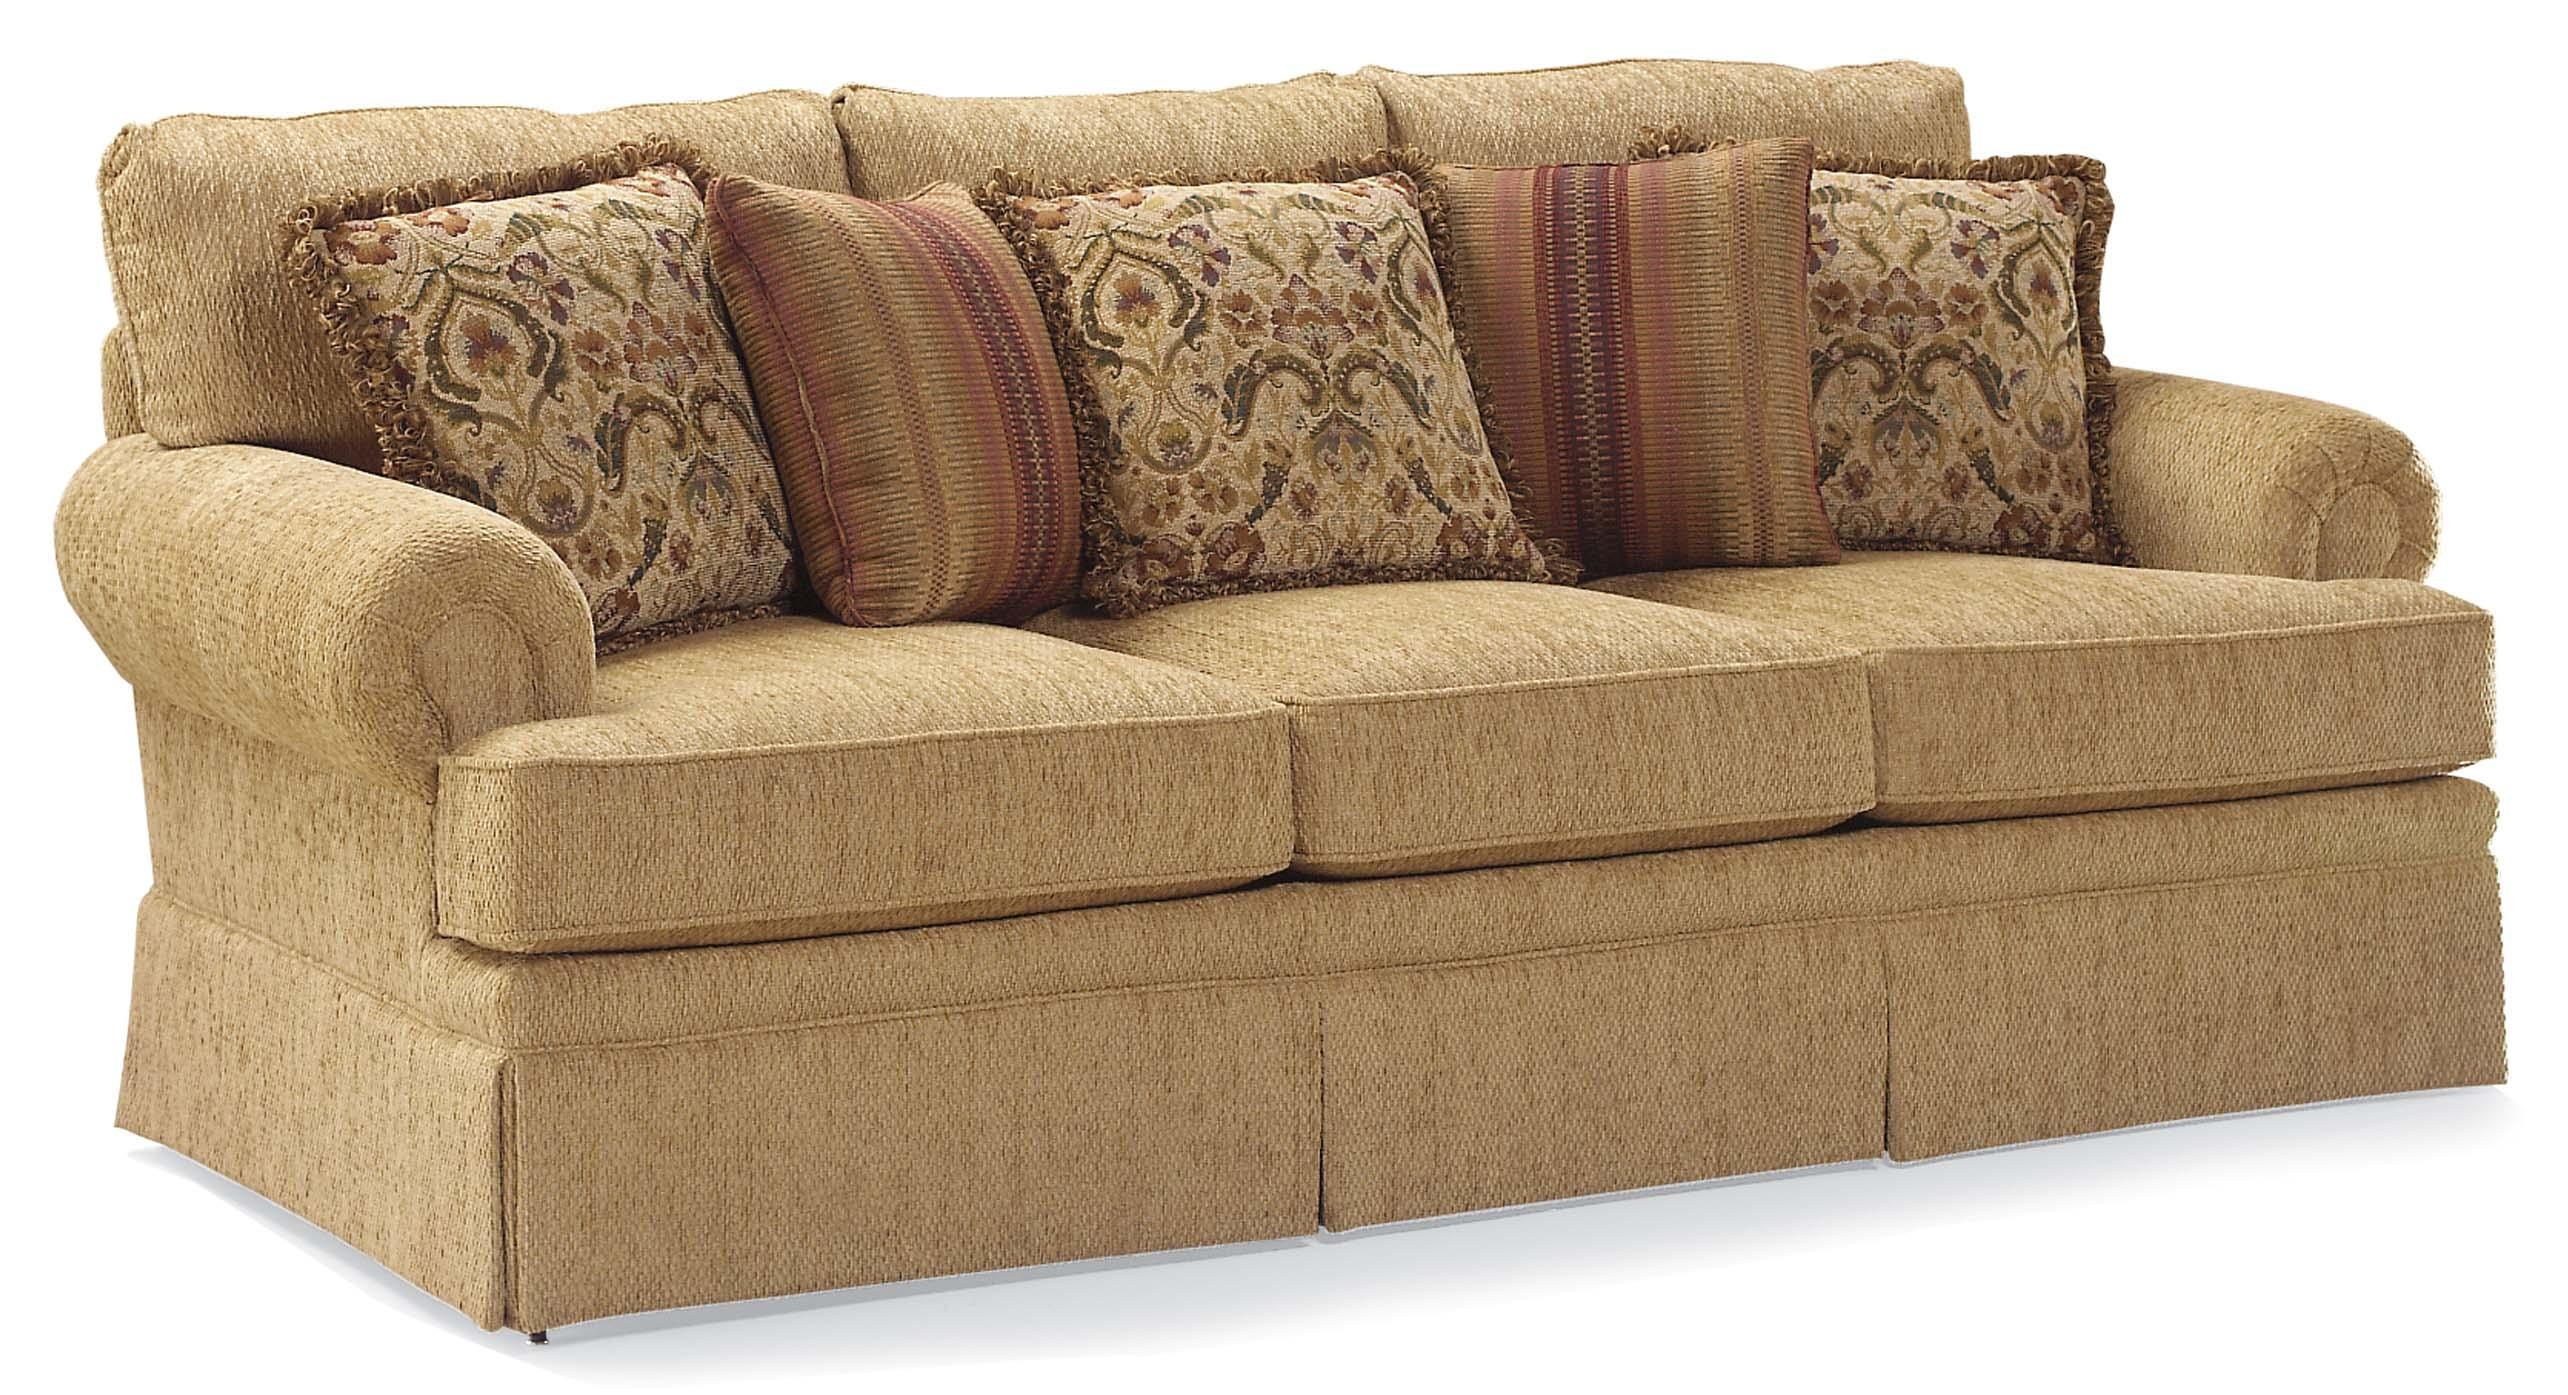 Fairfield sofa fairfield sofa accents slighlty arched for Traditional sofas and loveseats